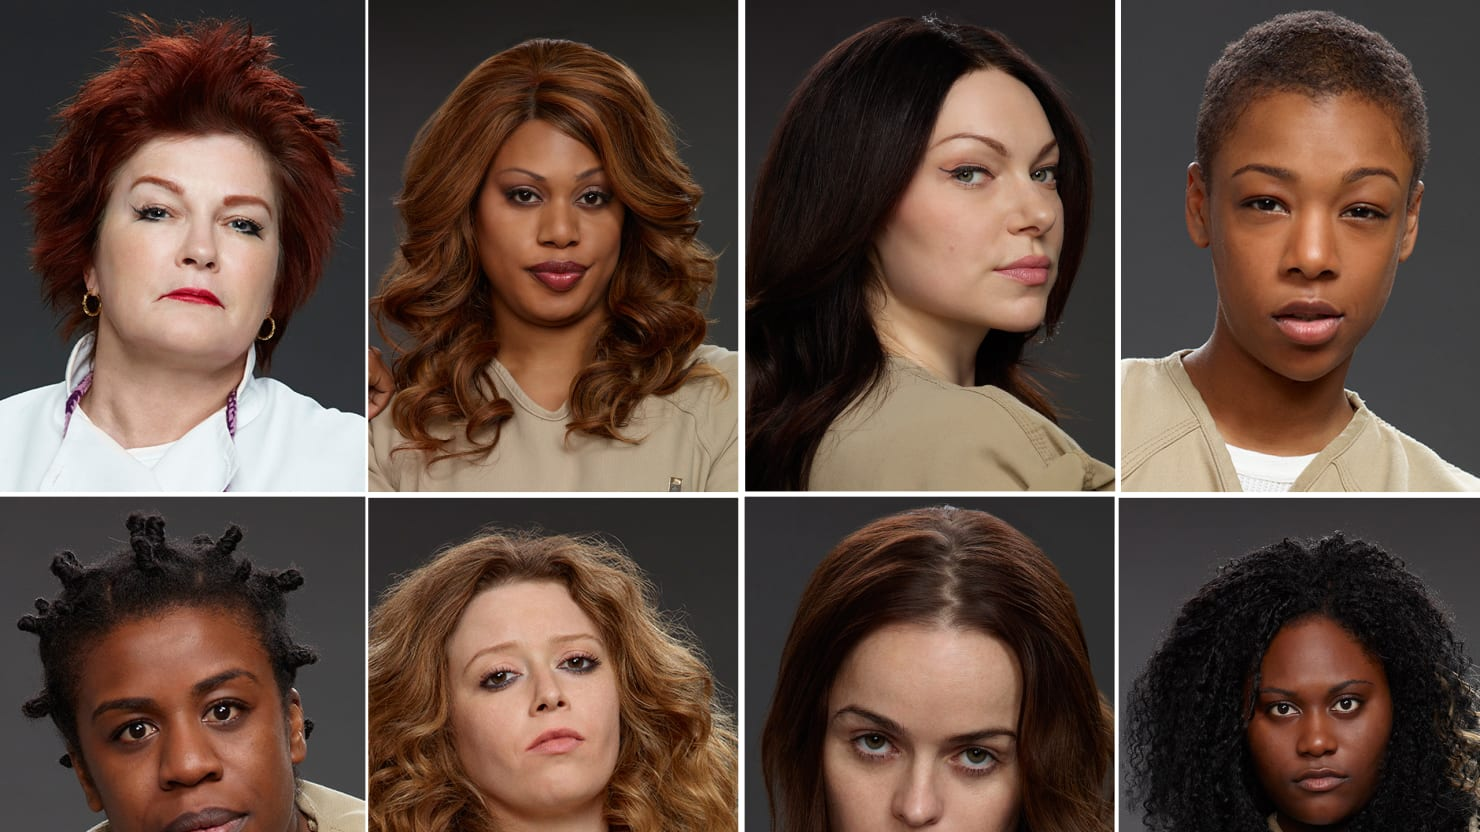 orange is the new black character